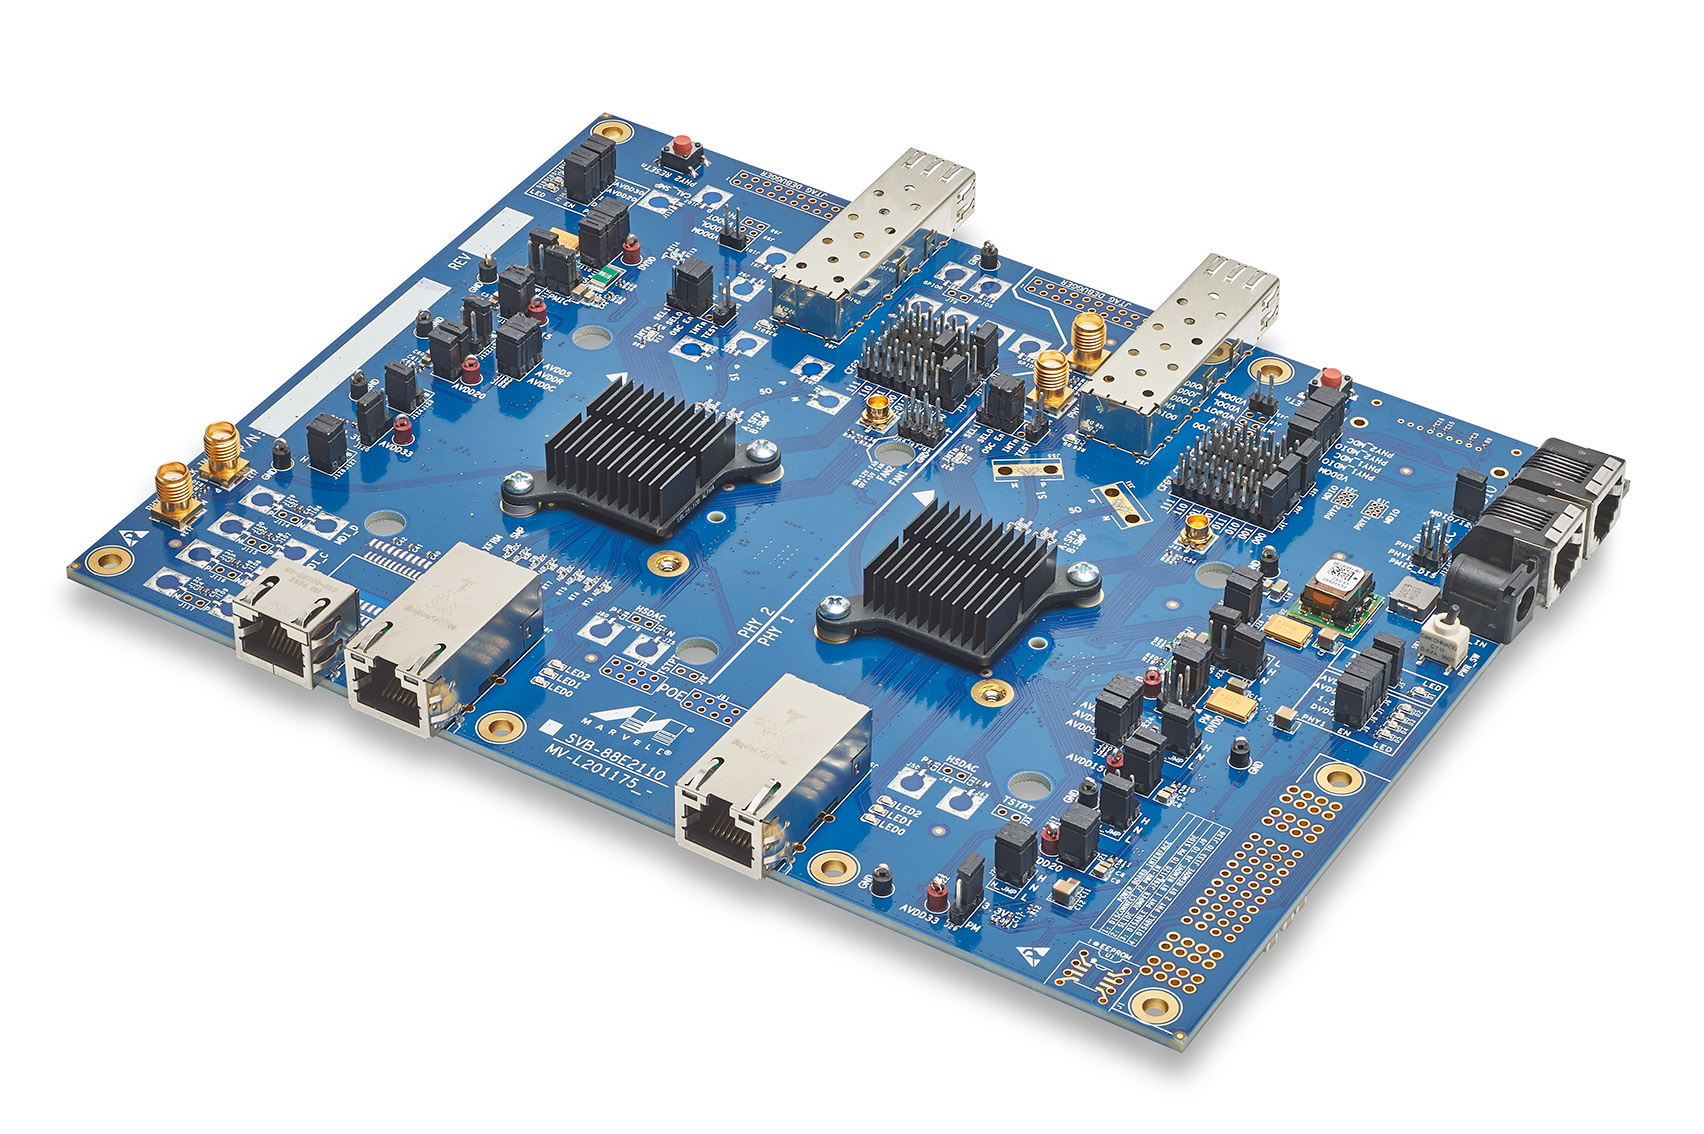 Marvell's Alaska® M 88E2110 Gigabit Ethernet Development Board